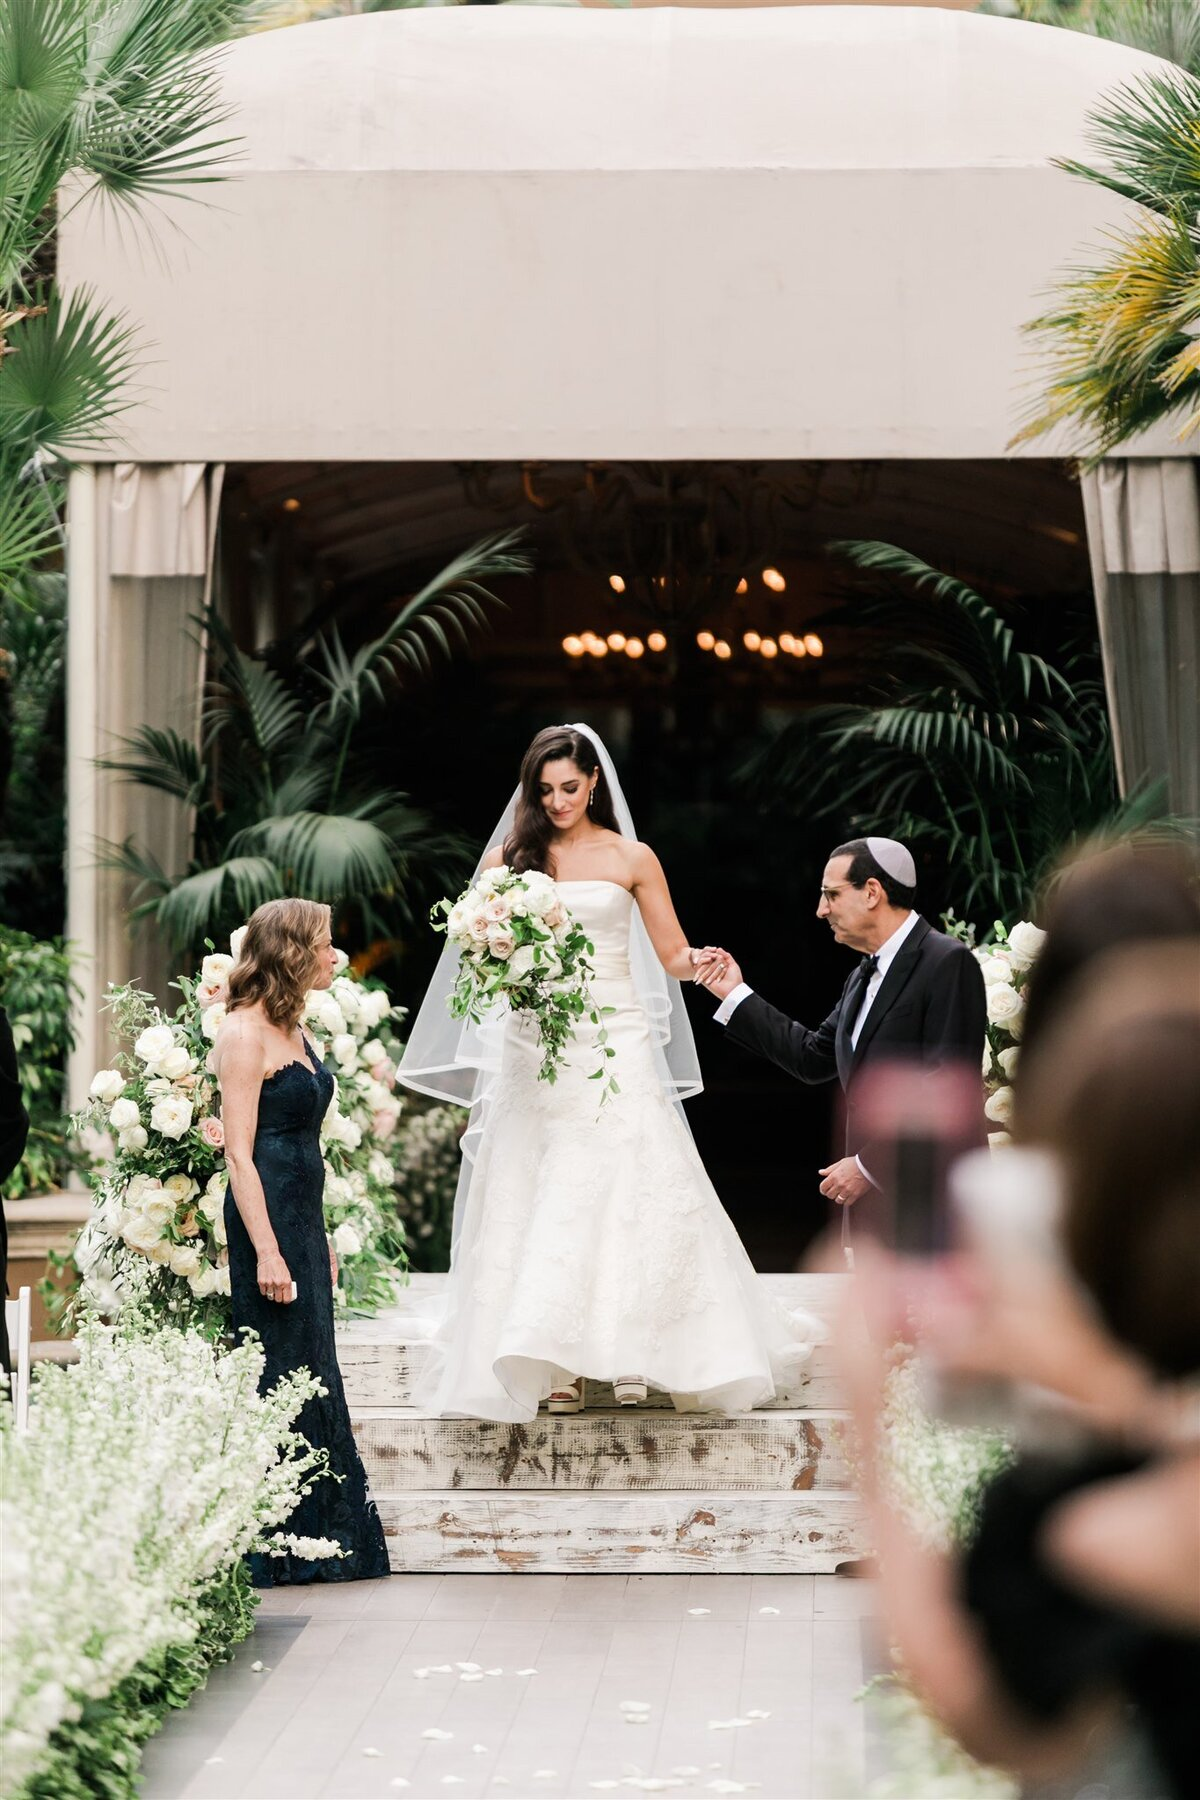 Four Seasons Beverly Hills Wedding-Valorie Darling Photography_ID3A2354